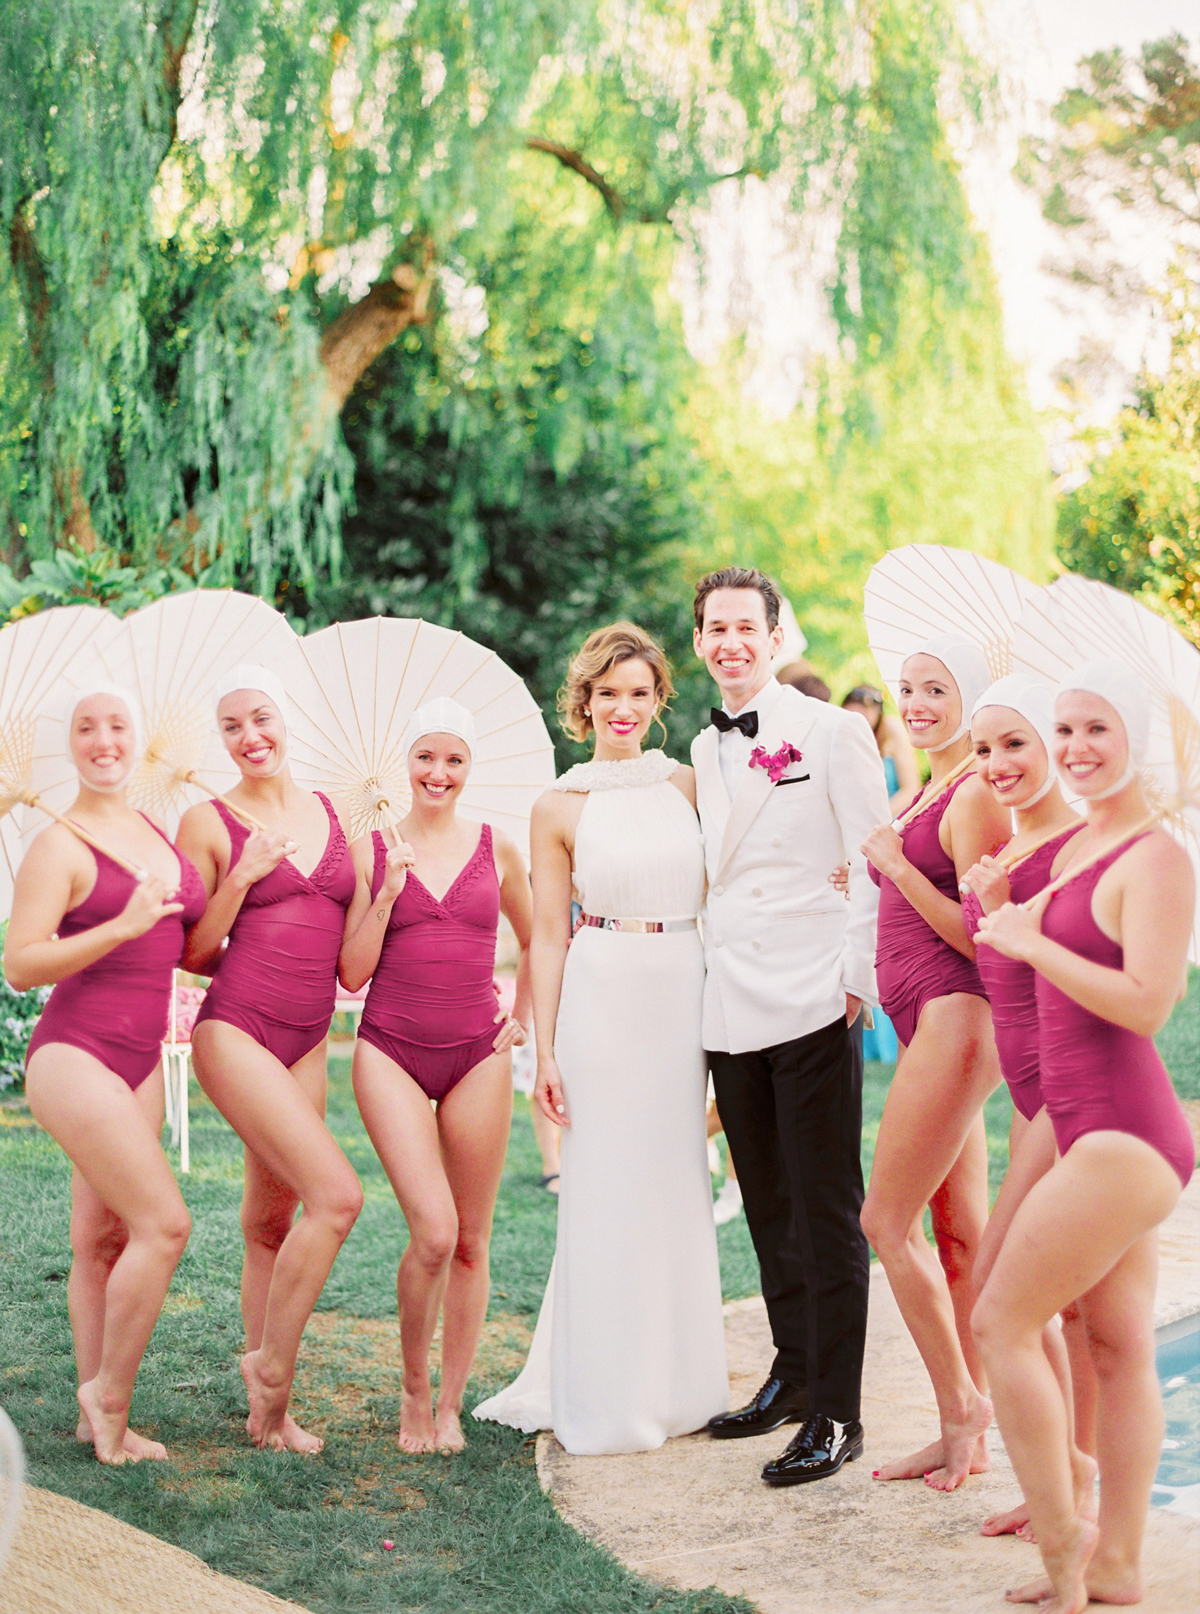 Guests Traveled to the French Riviera for This Couple's Fun, Formal Wedding